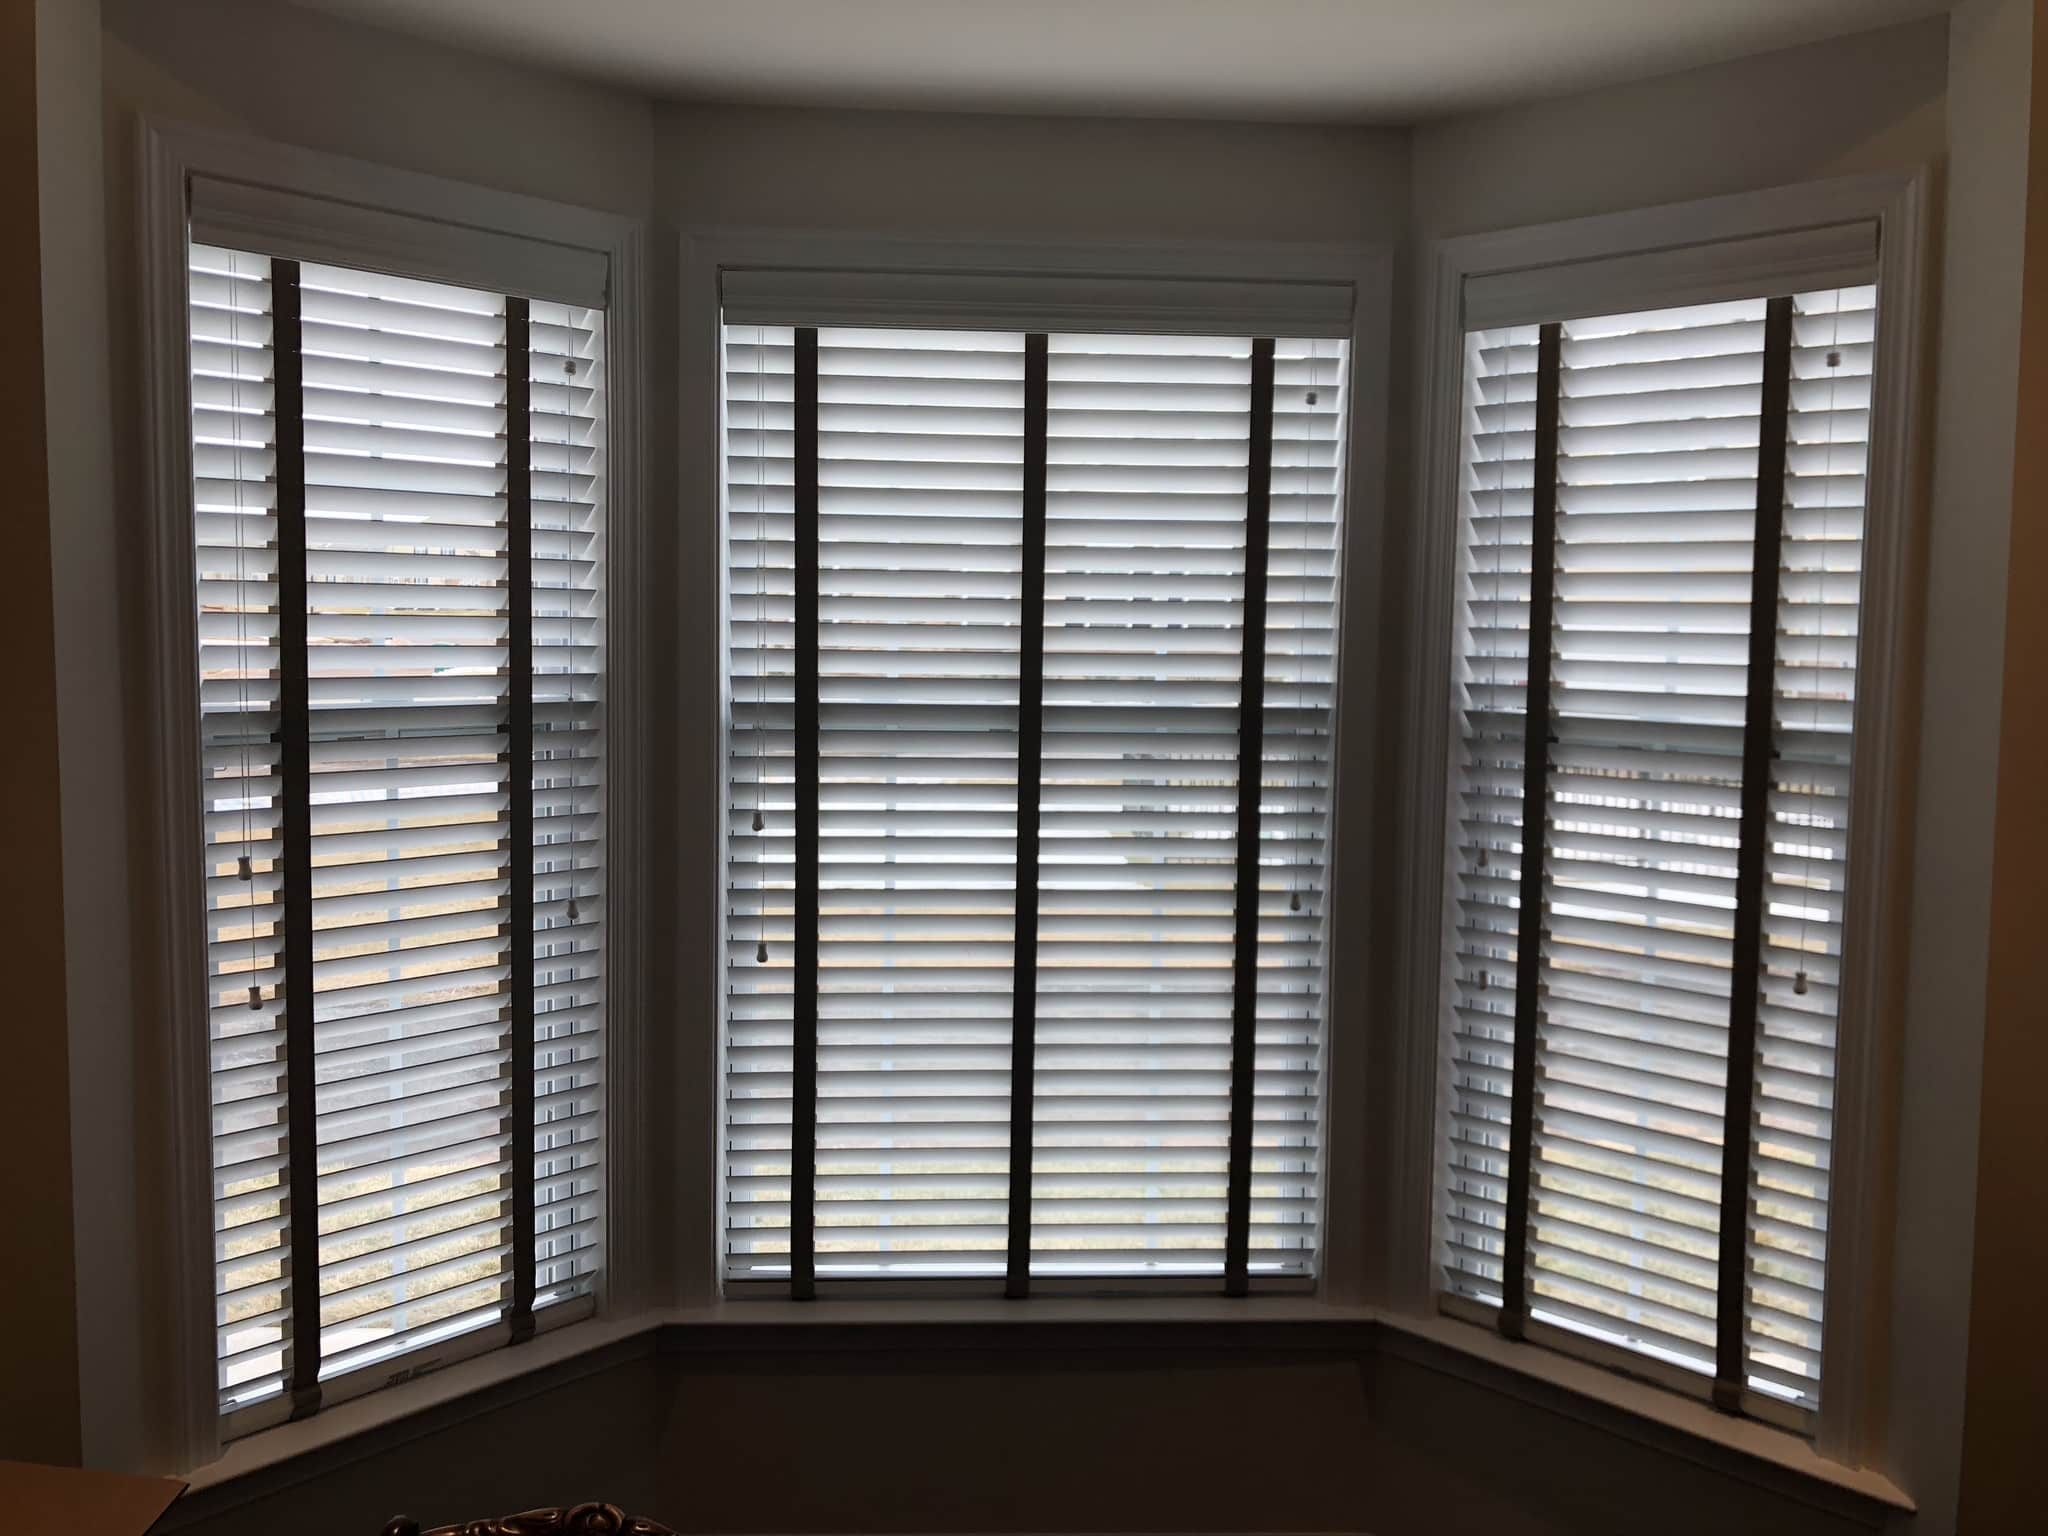 haywards a bay wood blinds window box venetiansplantation for google heath uk plantation sussex in cost windows installed shutters to searchshutter venetian